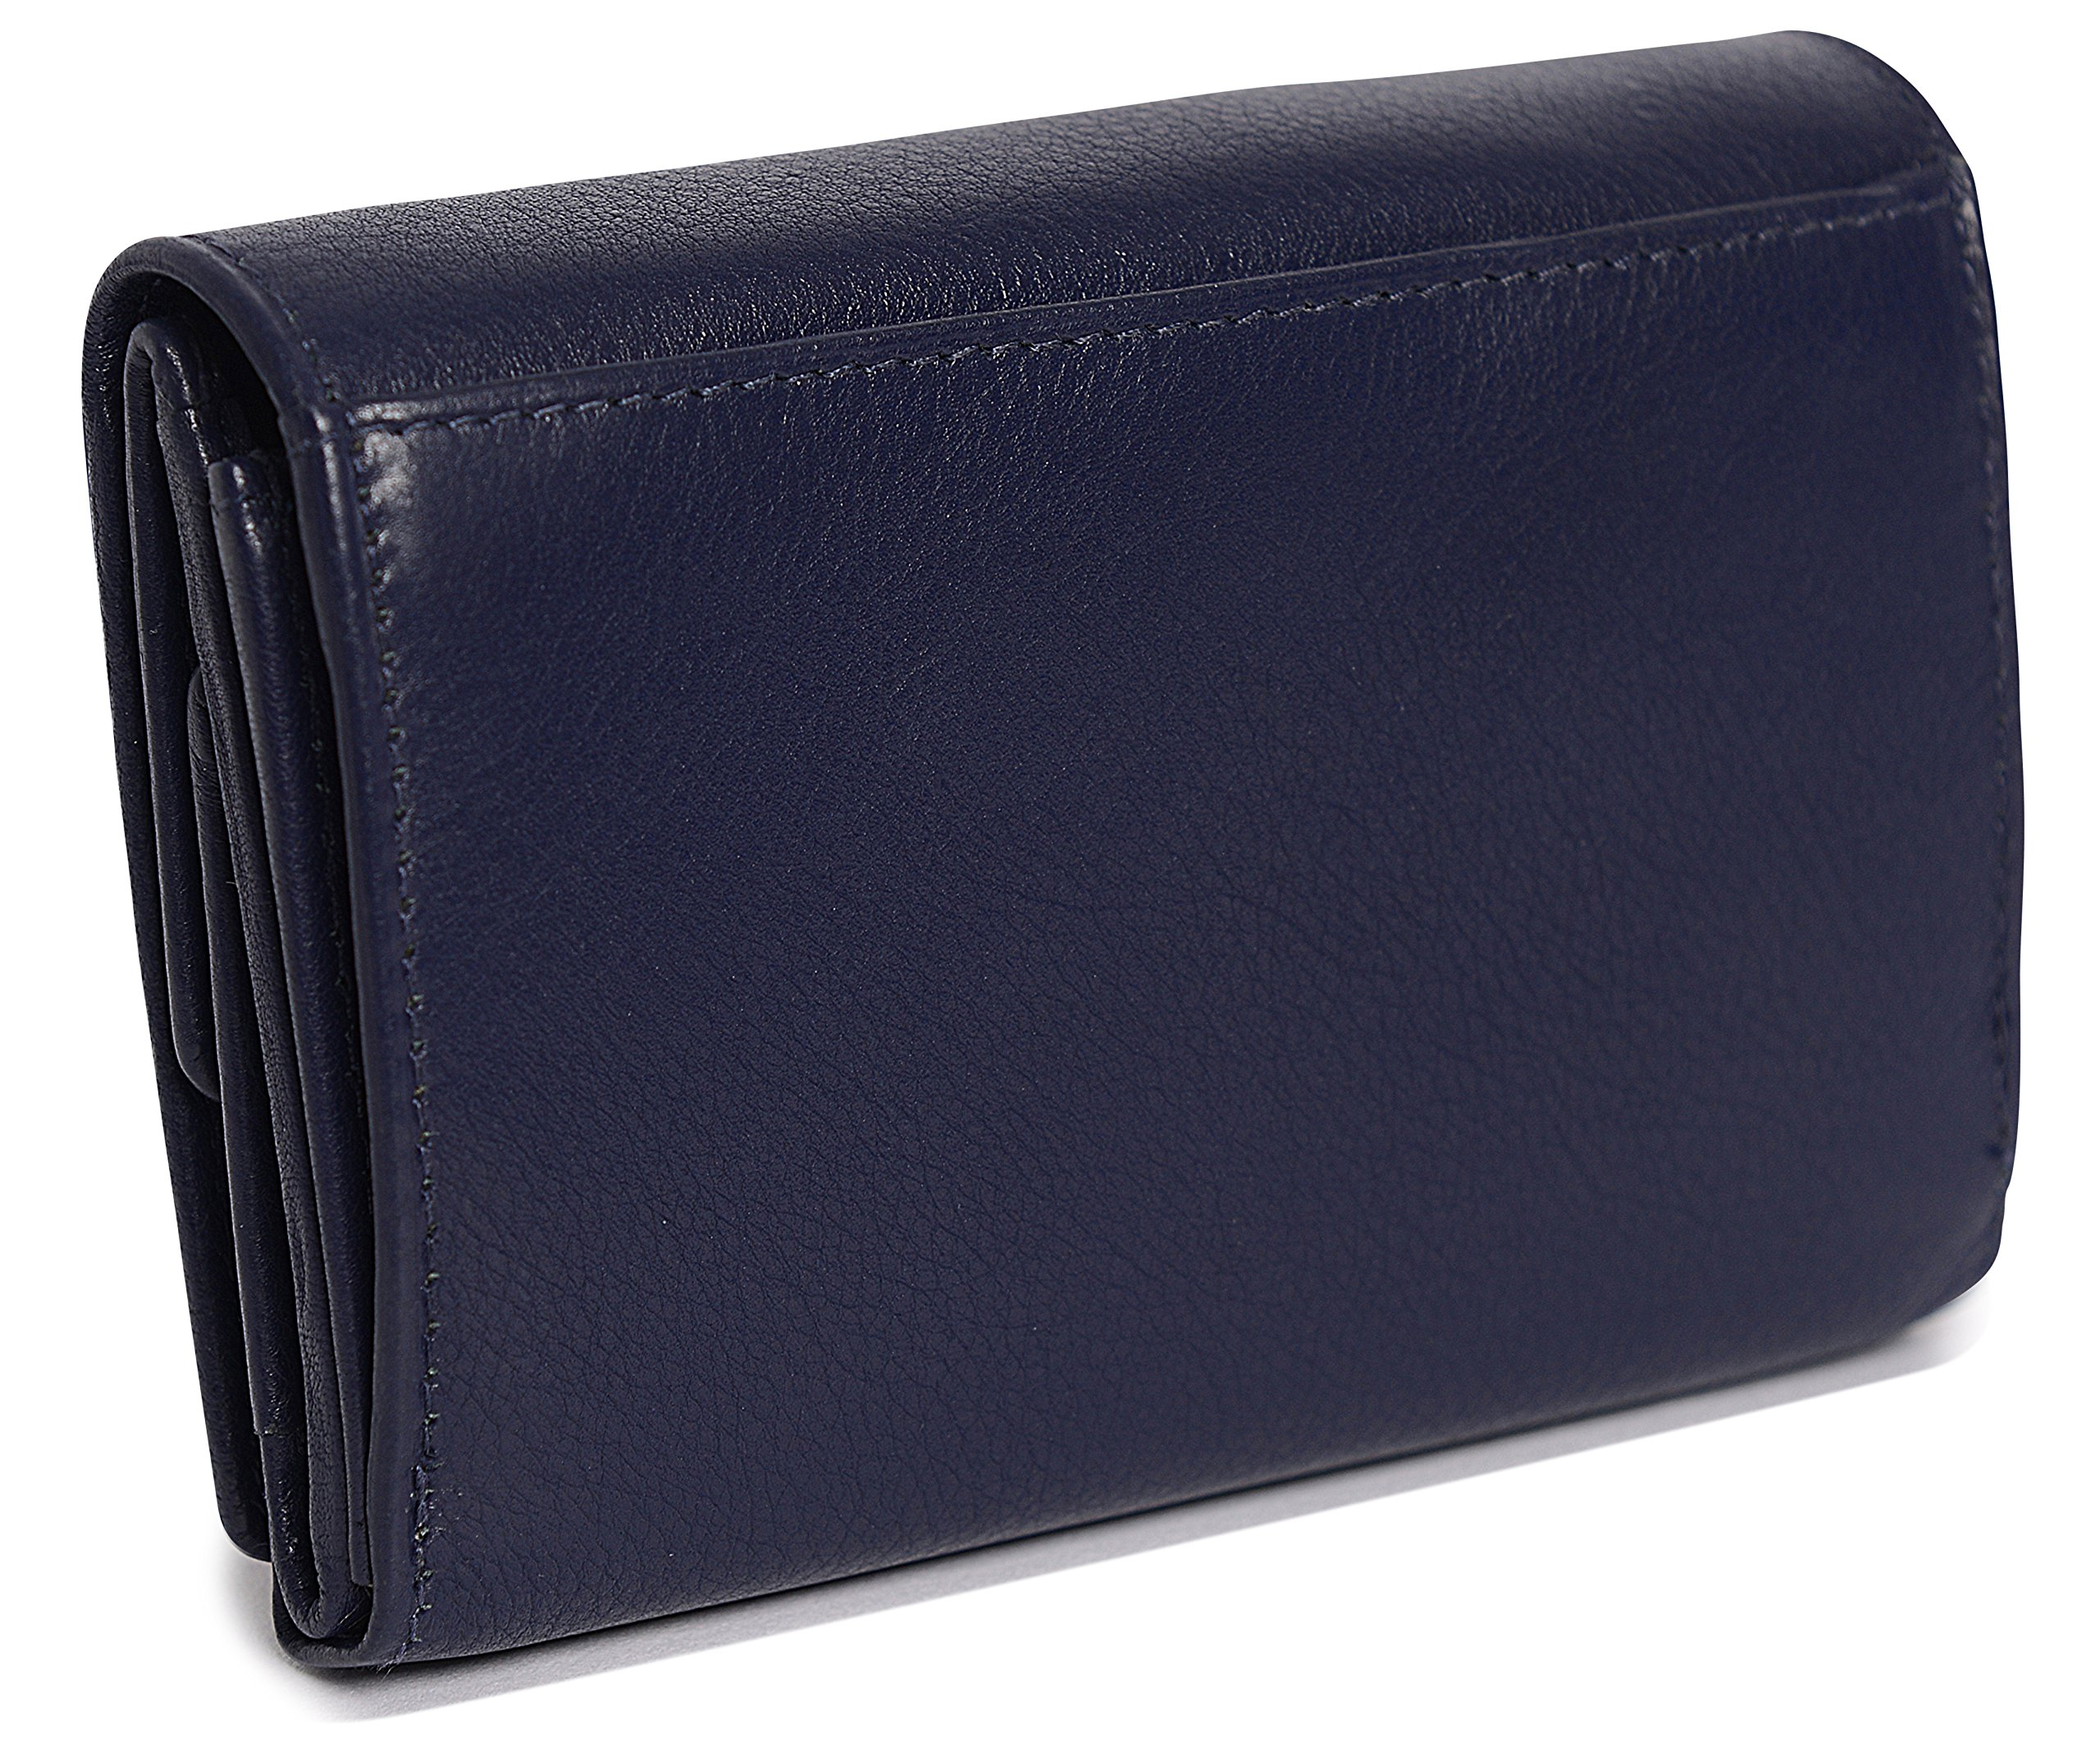 SADDLER Womens Leather Double Flap Coin Purse Trifold Wallet - Peacoat Blue by Saddler (Image #5)